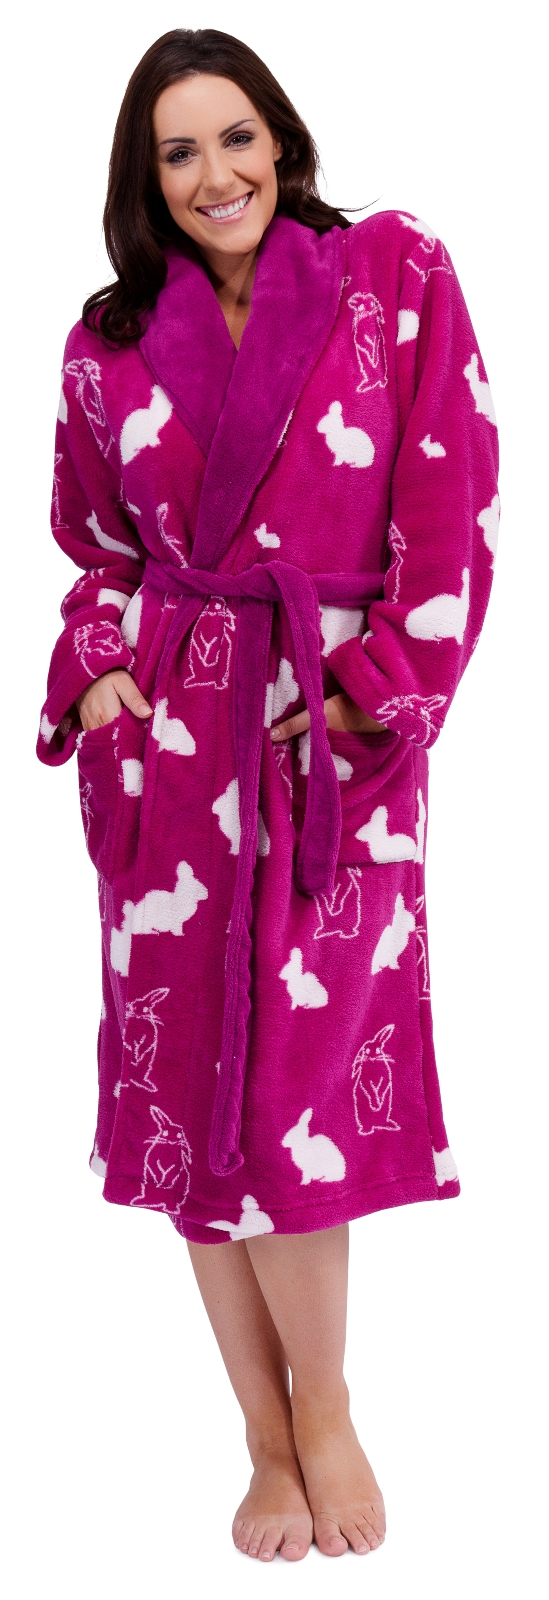 Buy Dressing gowns from the Womens department at Debenhams. You'll find the widest range of Dressing gowns products online and delivered to your door. Shop today! Cream spot print fleece dressing gown Save. Was £ Now £ Lounge & Sleep Grey heart print 'Sleek' fleece robe Save. Was £ Now £